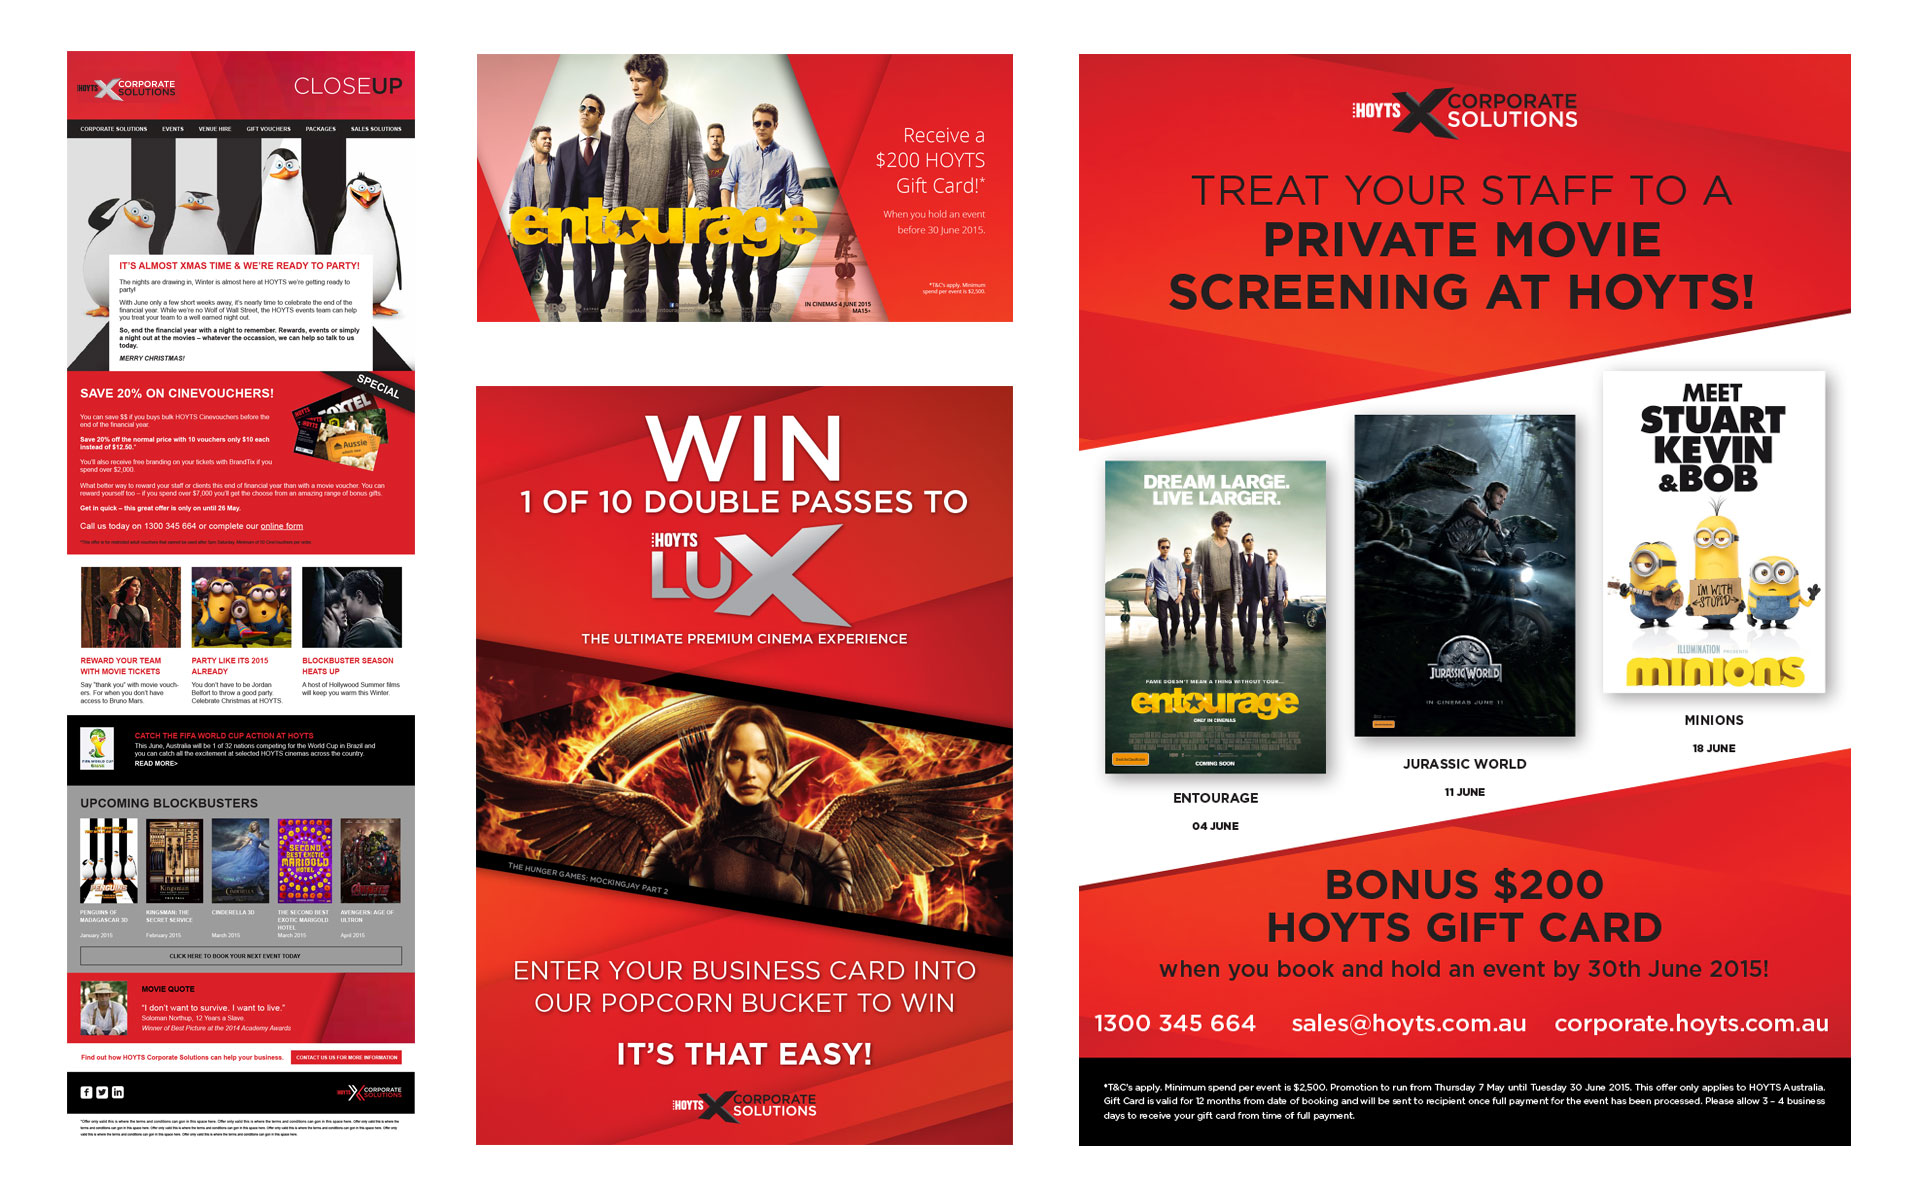 HOYTS Corporate Solutions branding, marketing, publications & online work designed by Amy at Yellow Sunday